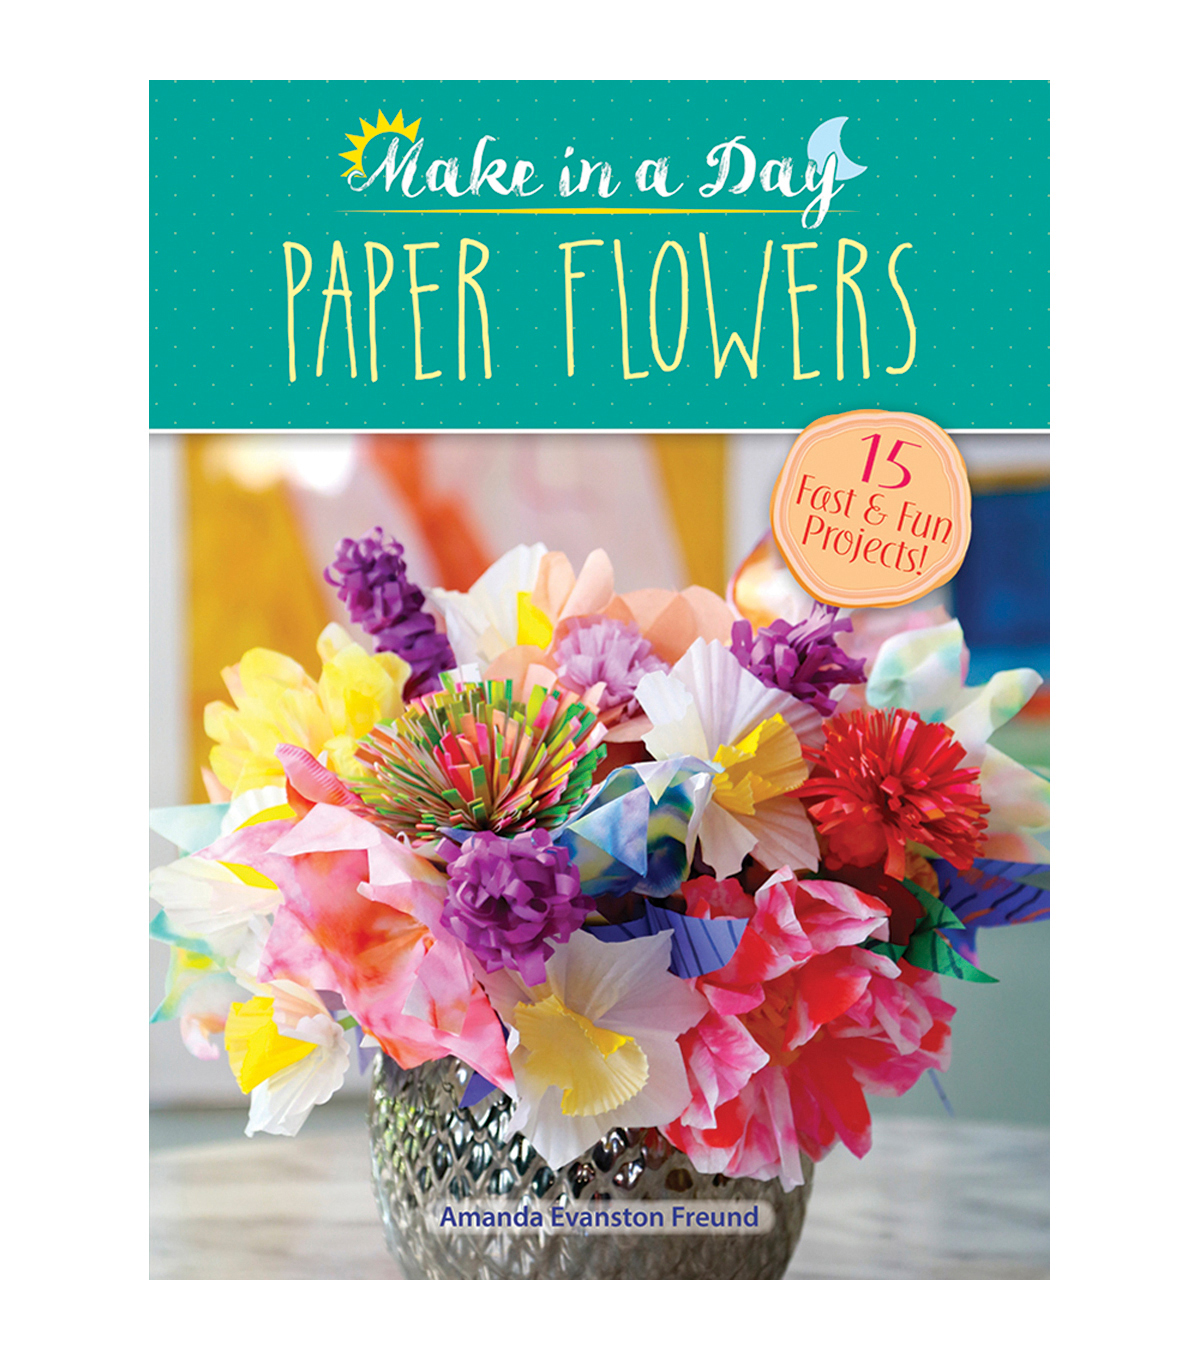 Make in a day paper flowers project book joann make in a day paper flowers project book mightylinksfo